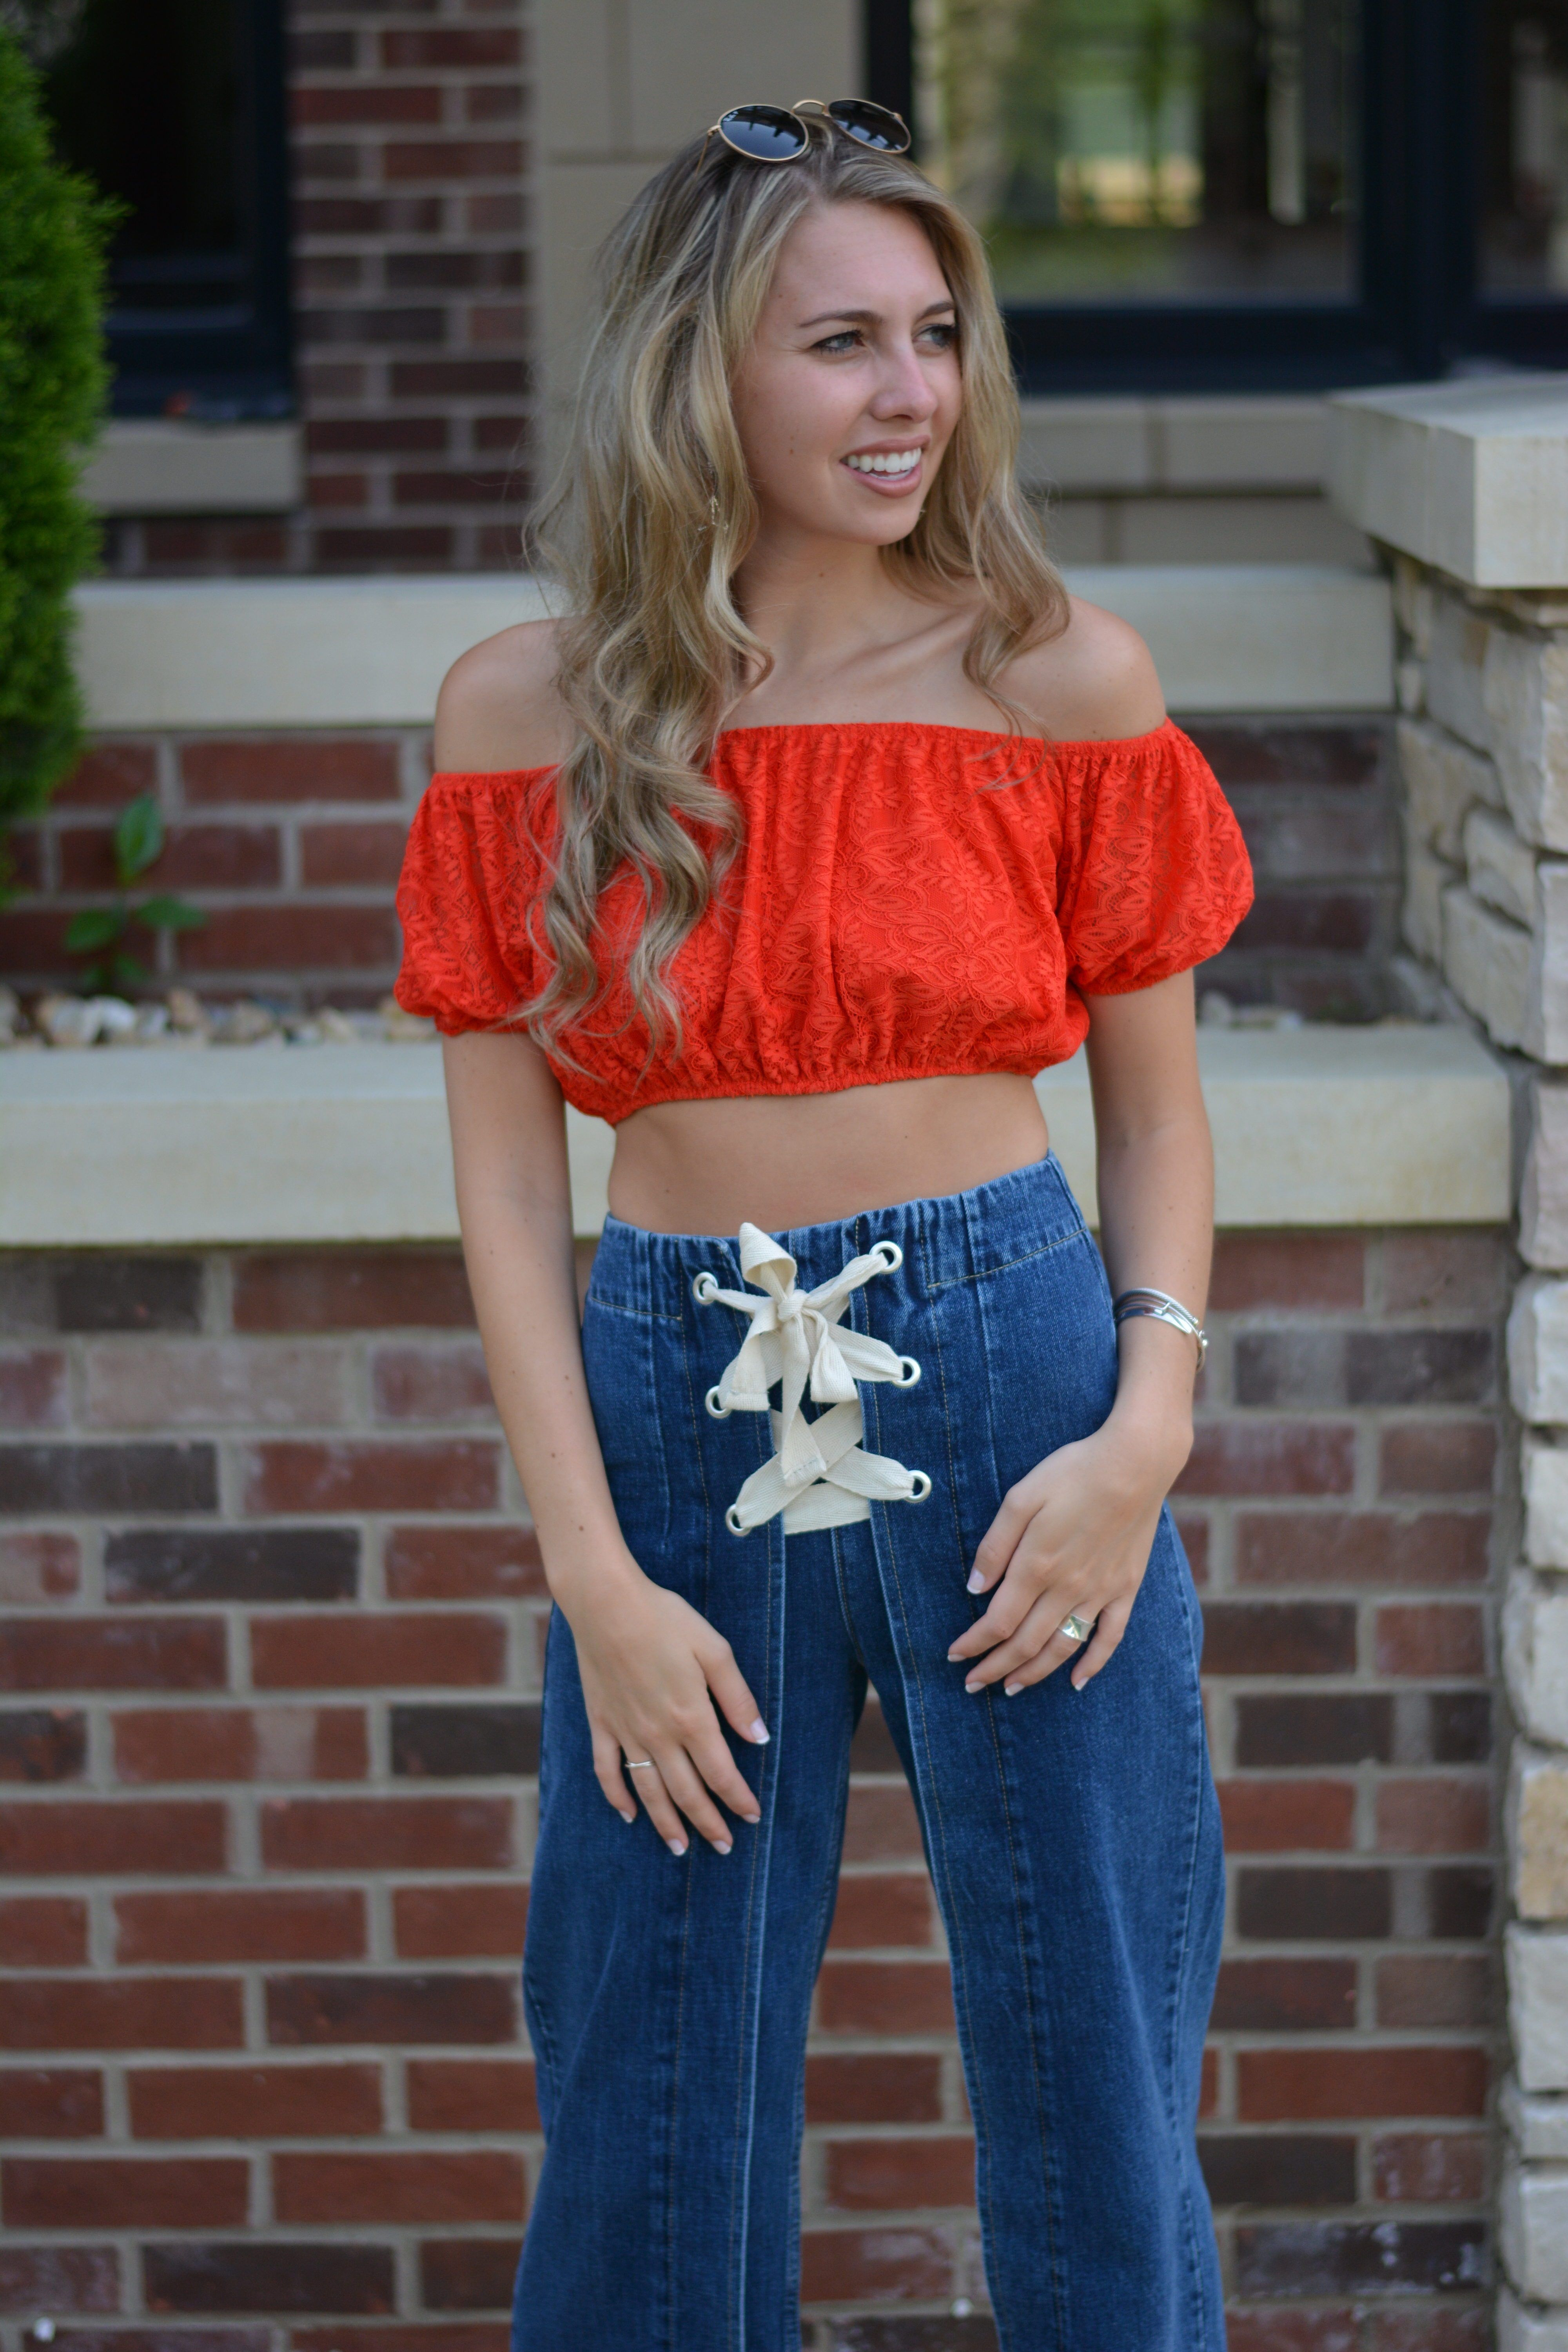 82ed2776ab52 Red White Red White Blue, Navel, Off Shoulder Blouse, Off The Shoulder,